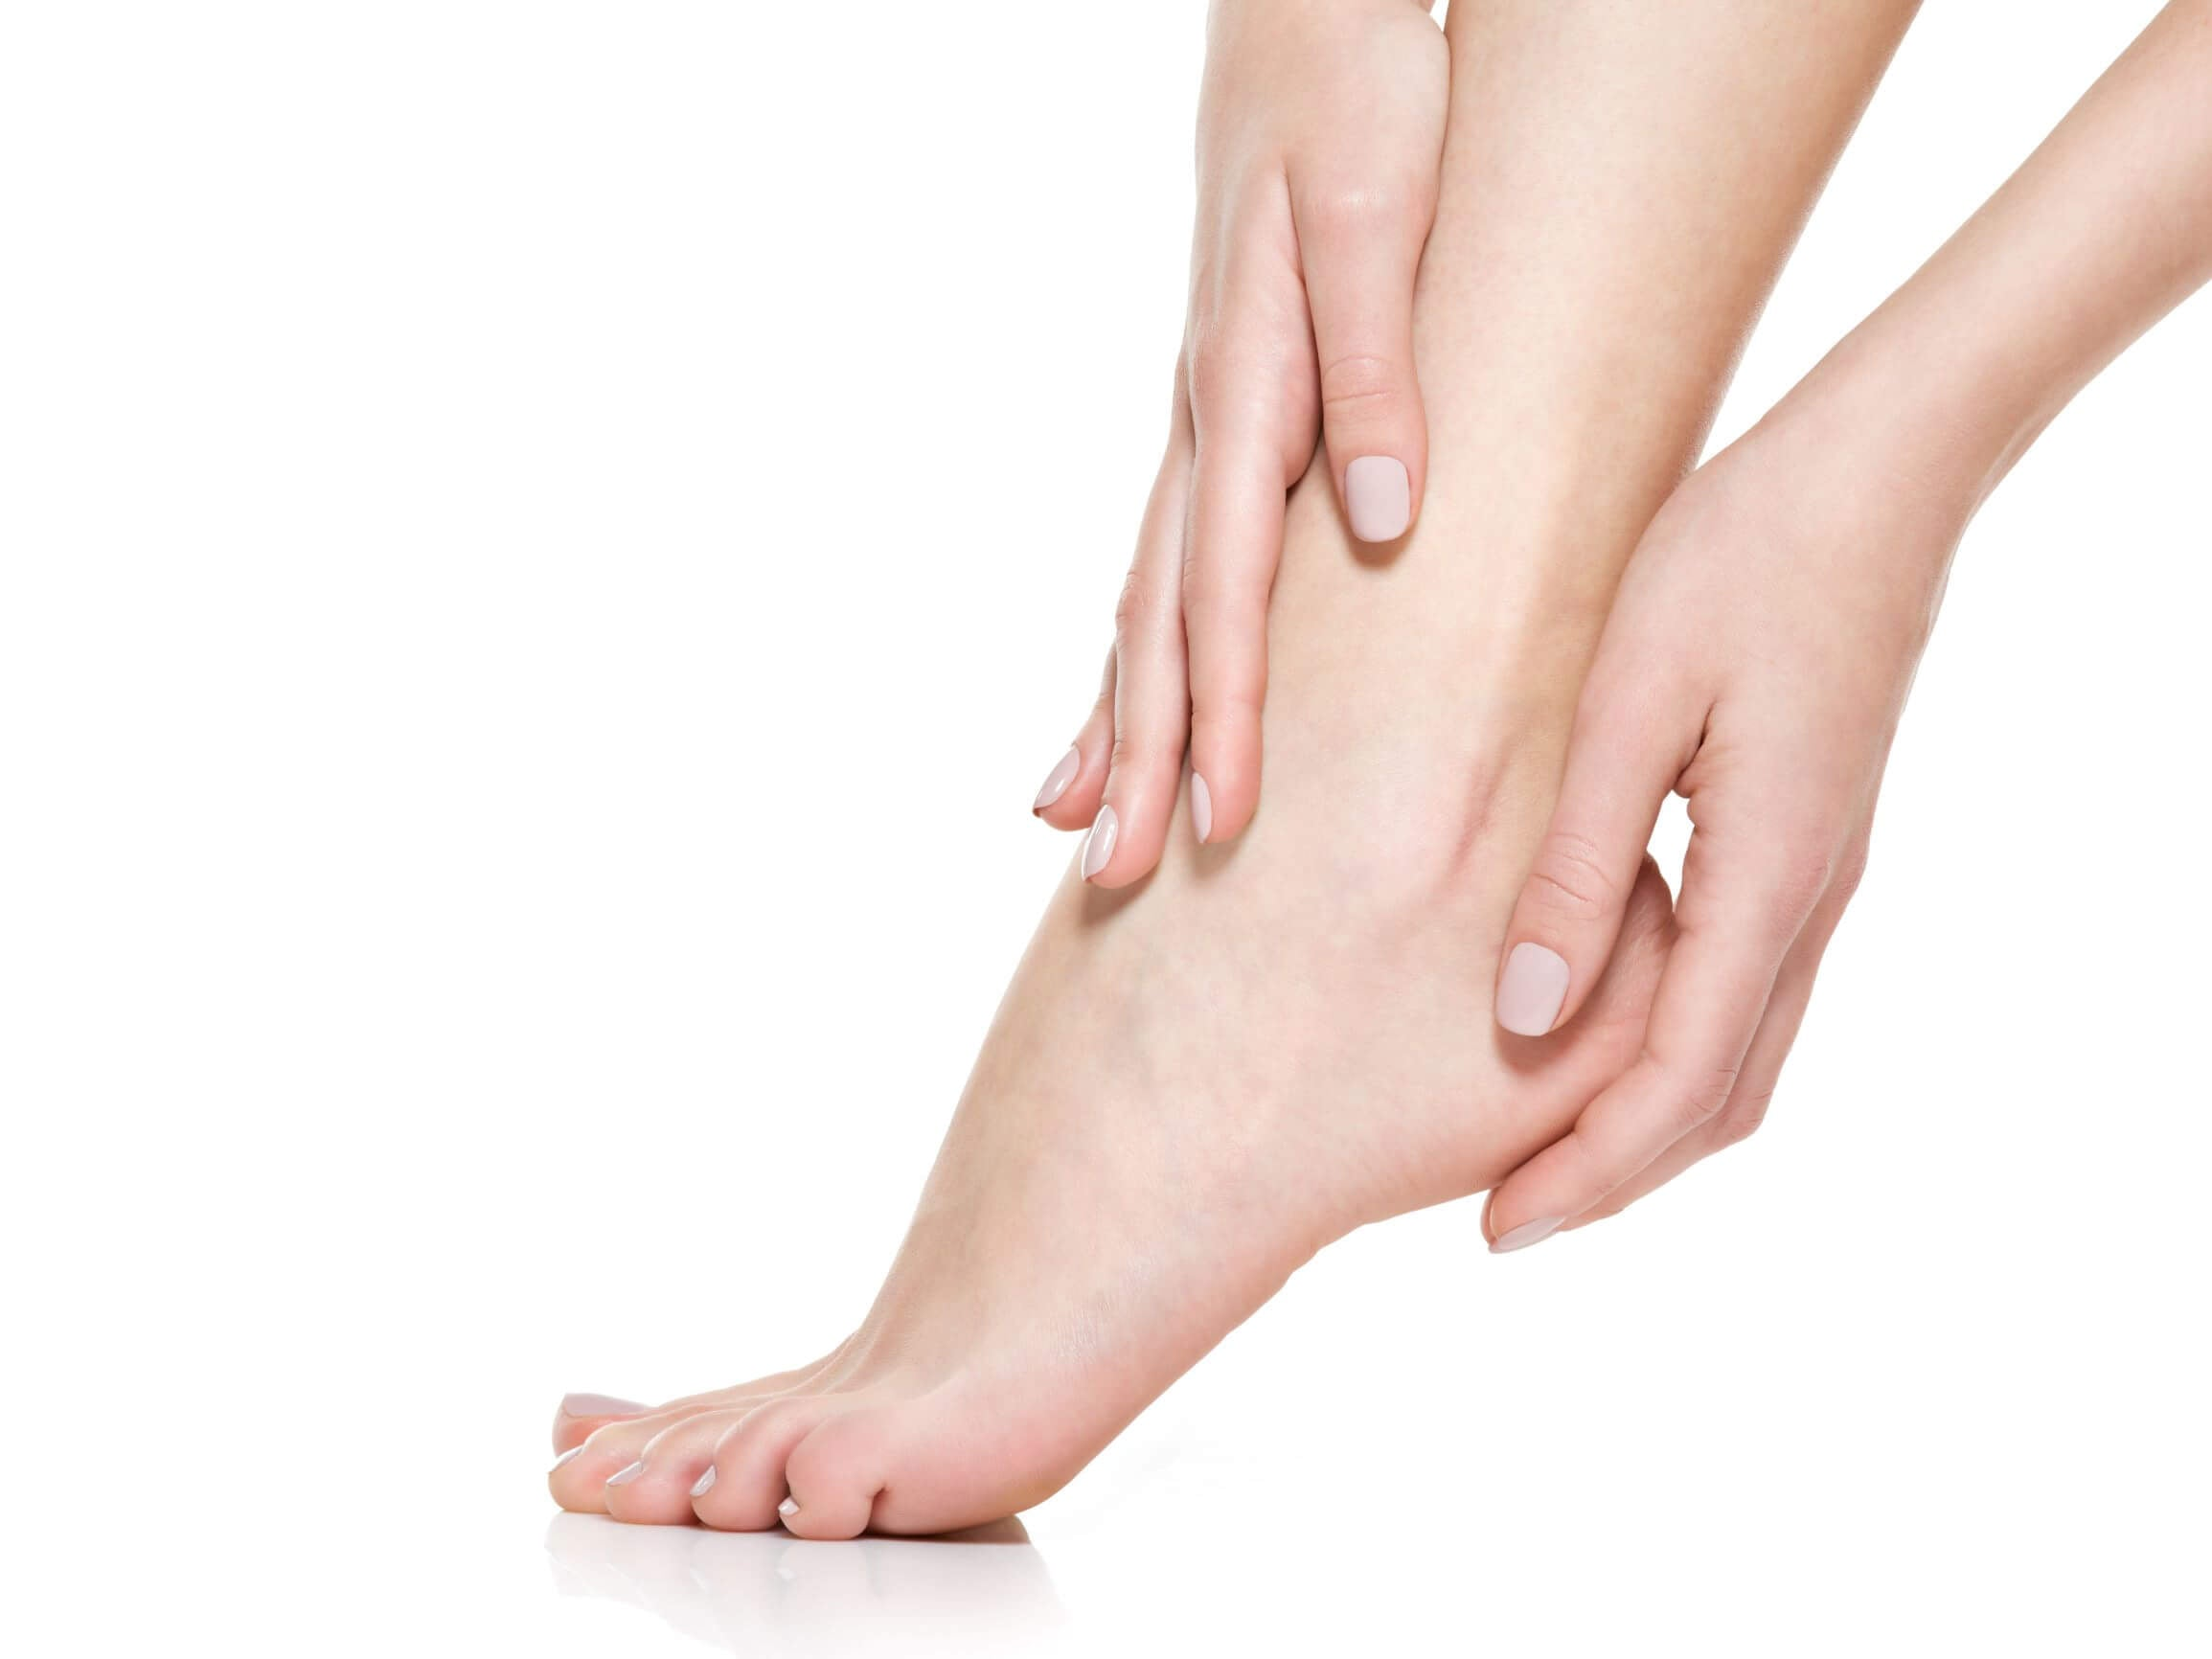 What Your Feet Say About Your Health